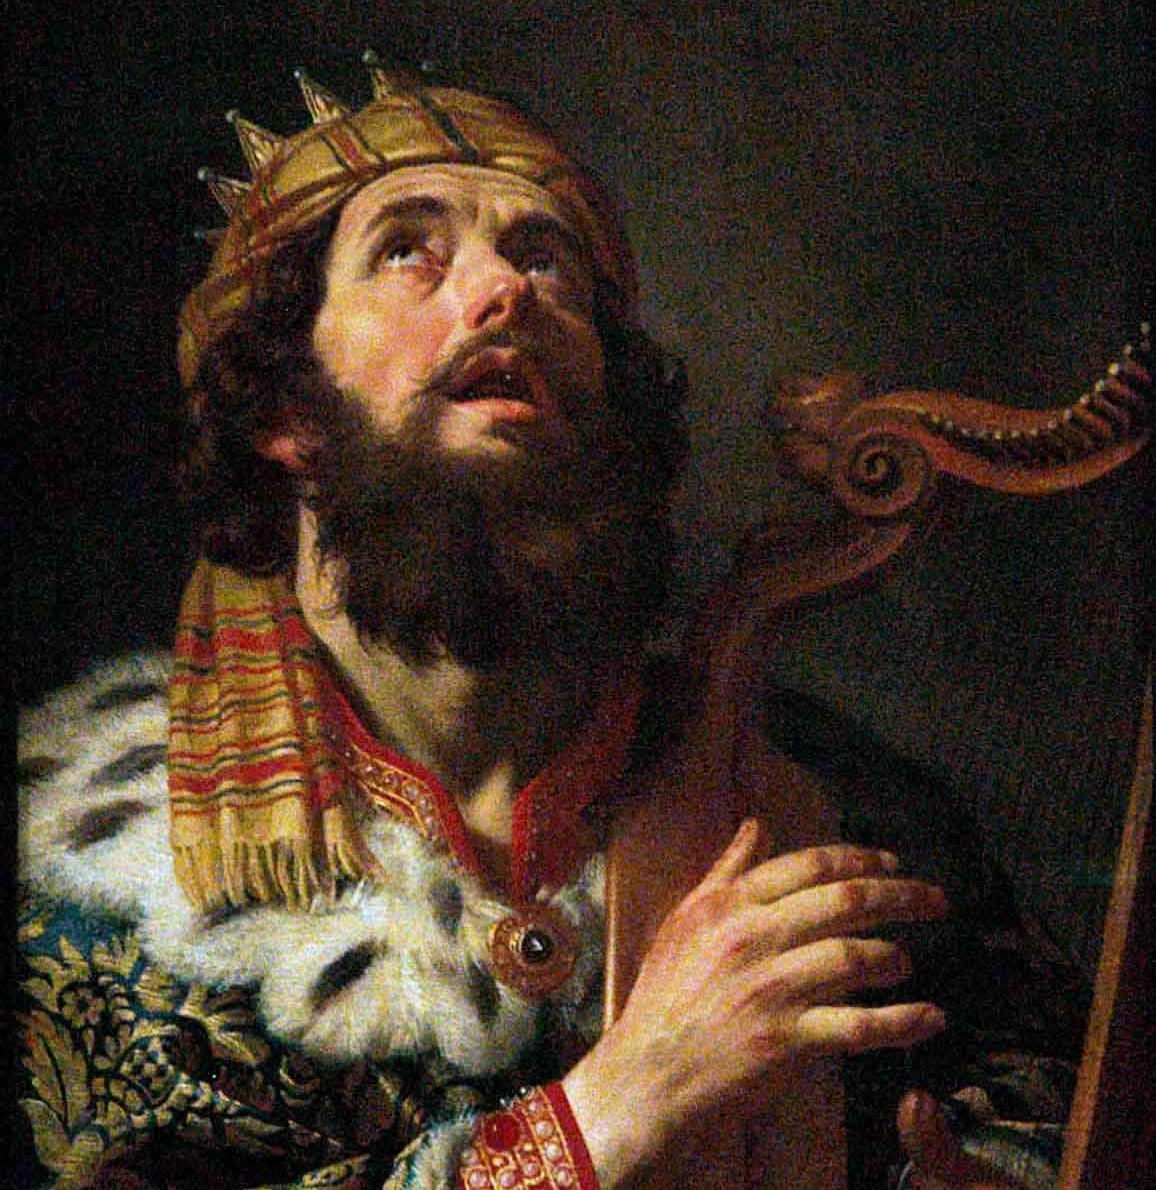 gerrit-van-honthorst-king-david-playing-the-harp-1611-1156x1407x300